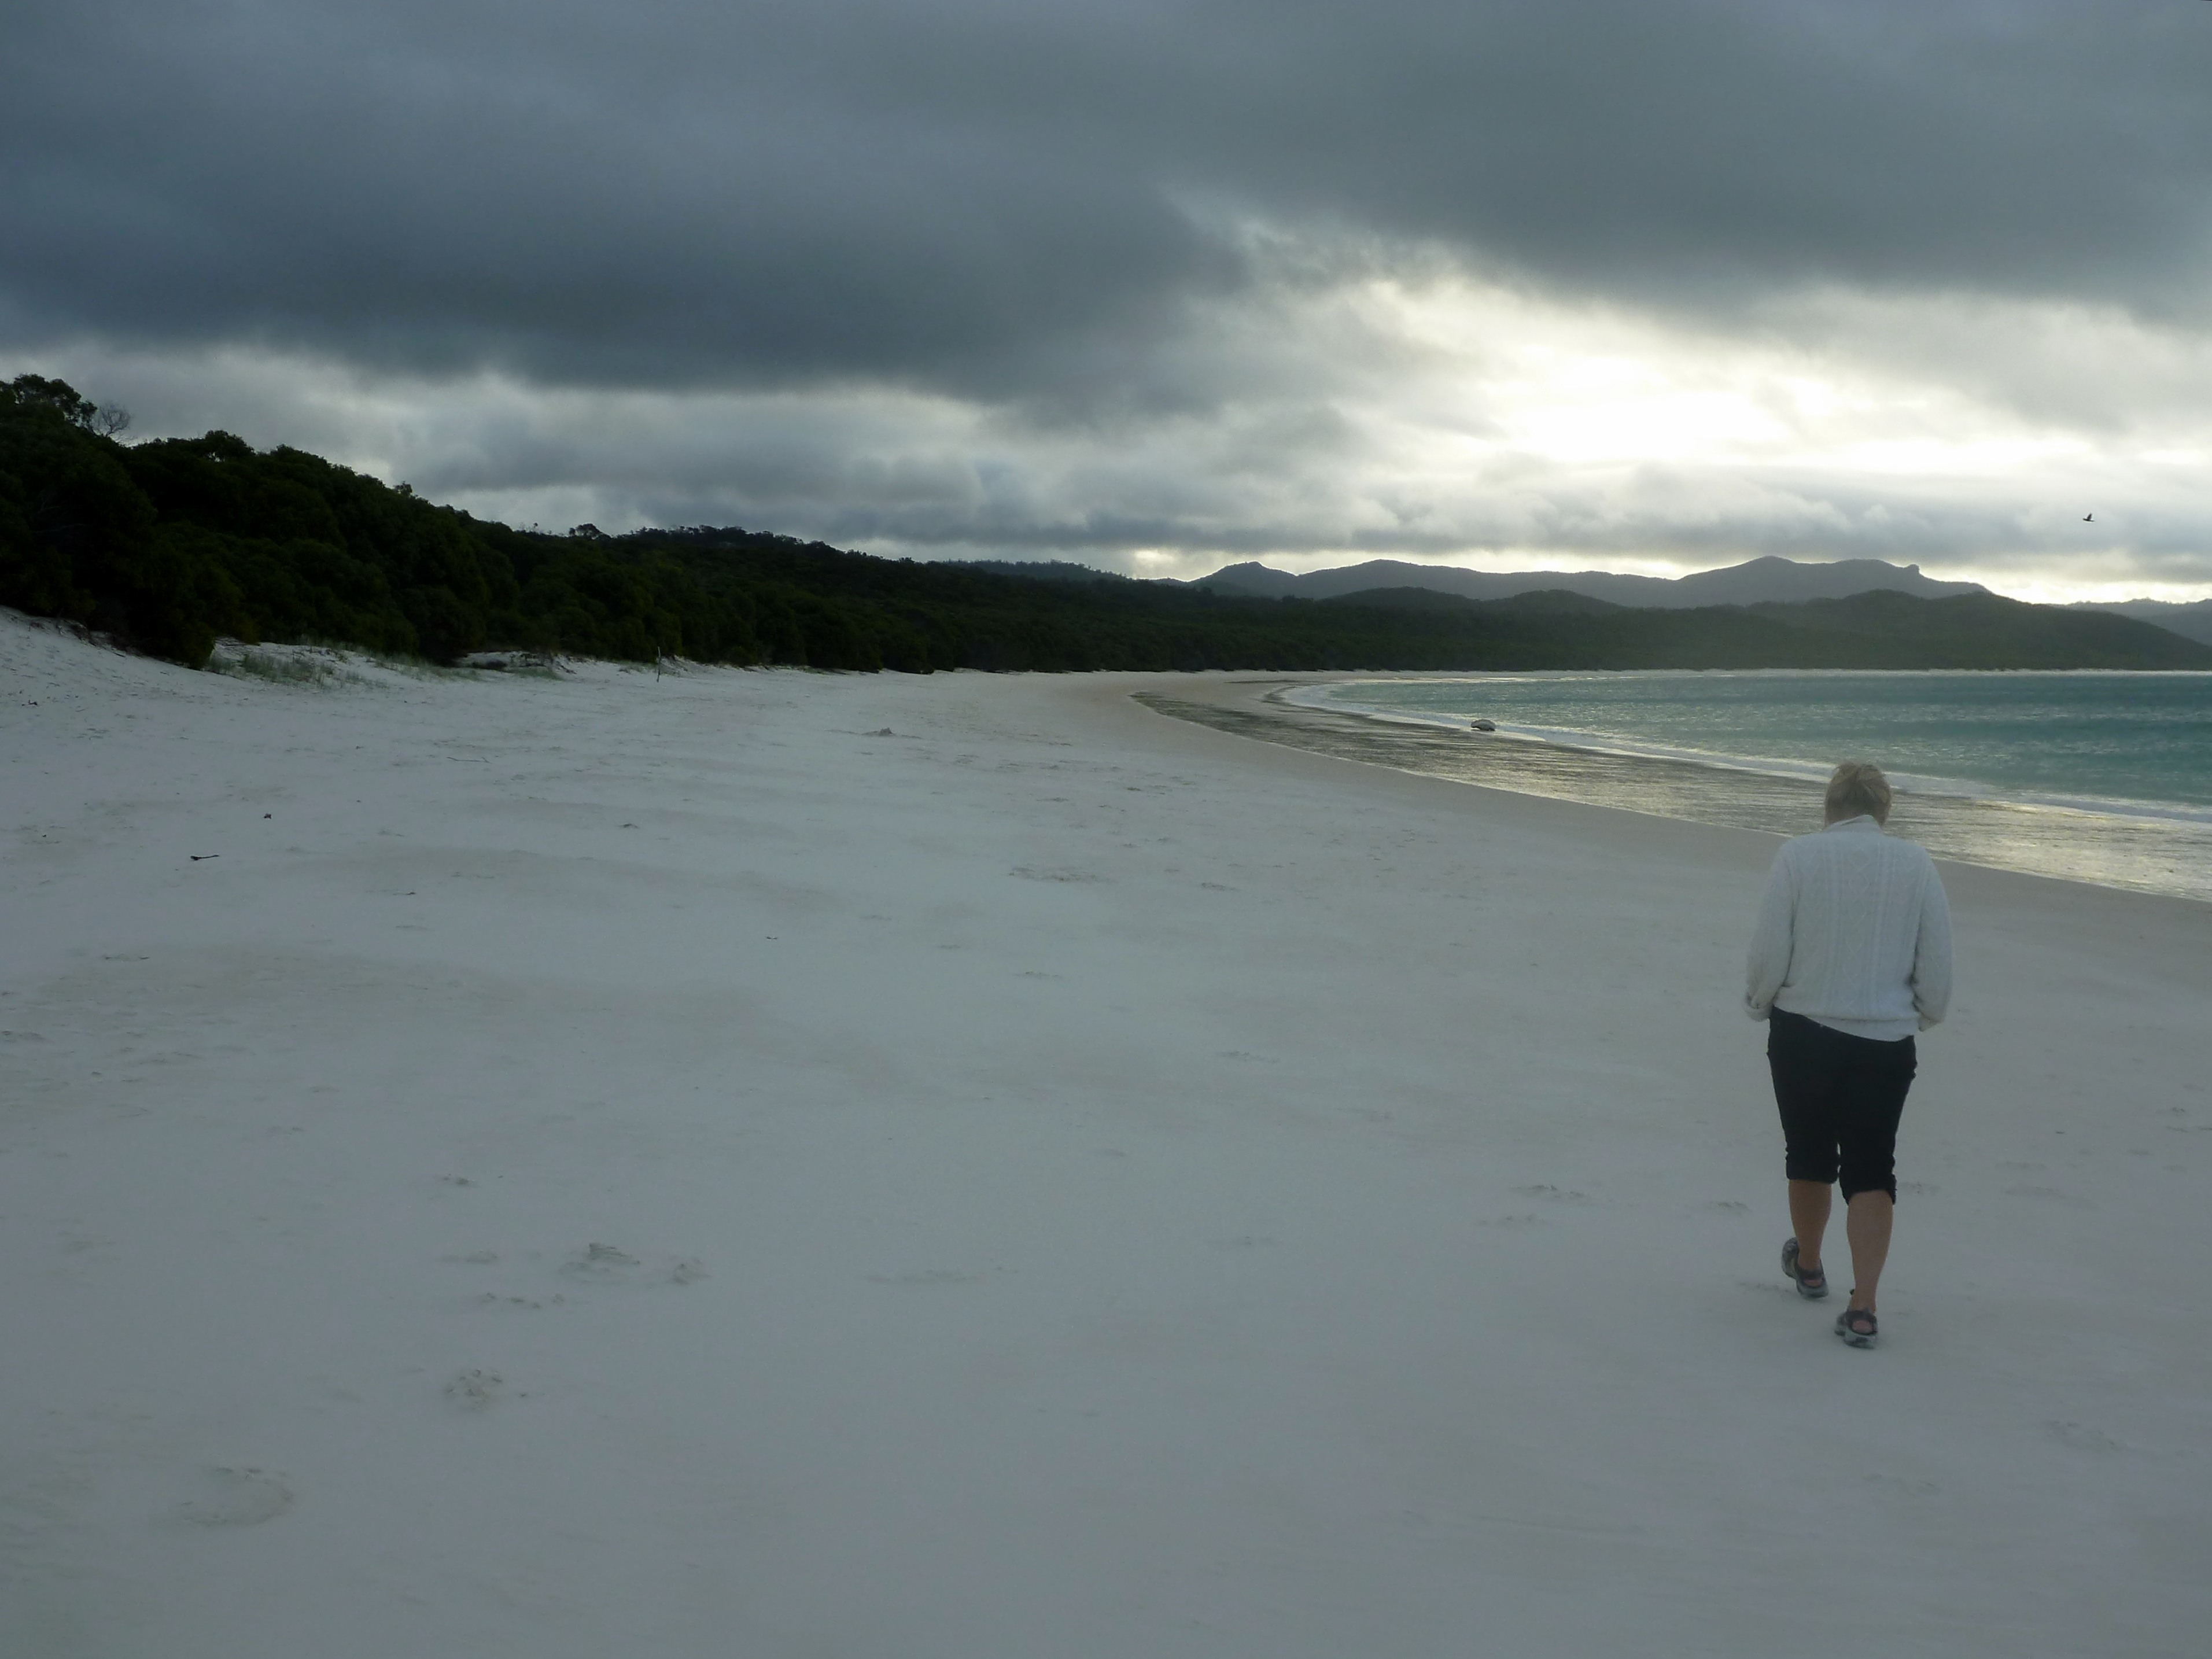 Whitsunday islands australia travel journal larry and diana after consulting the tide charts to make our low and high tide calculations we selected a spot in 5 meters to drop anchor even though the sky still looked nvjuhfo Gallery